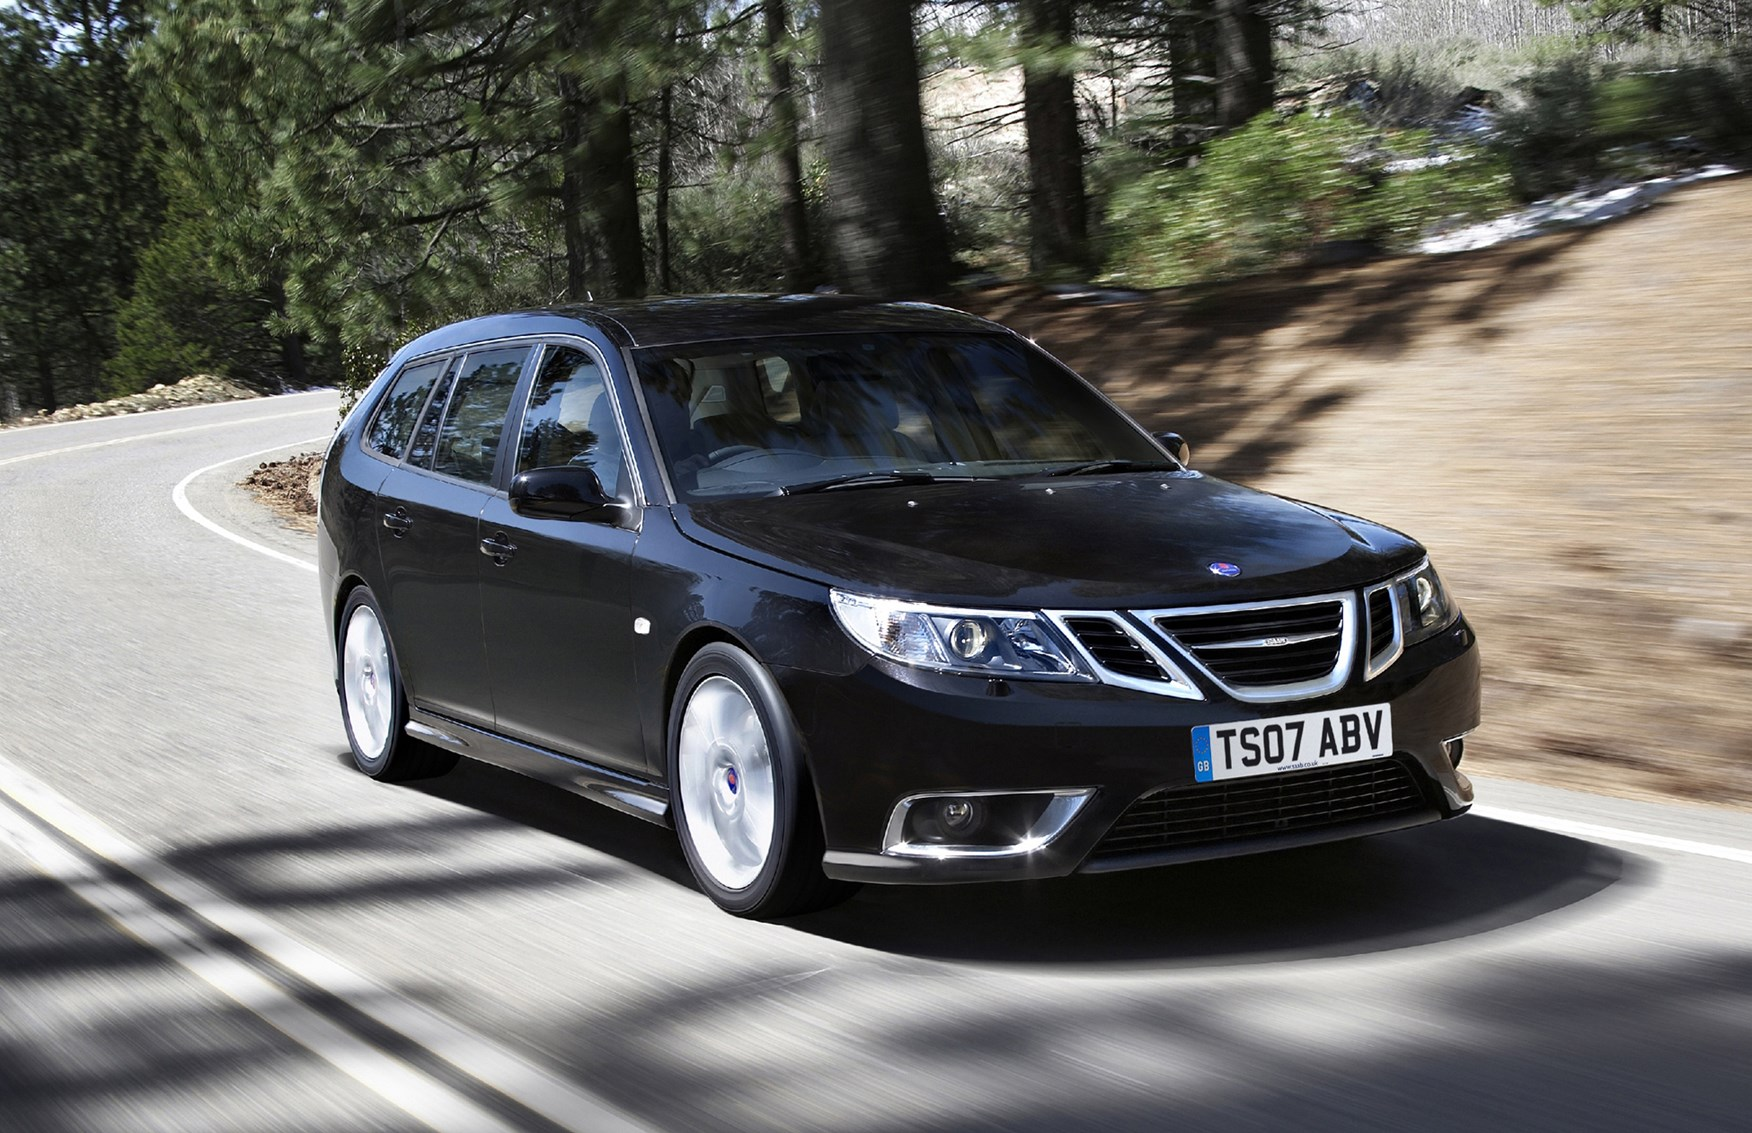 saab 9 3 sportwagon review 2005 2011 parkers. Black Bedroom Furniture Sets. Home Design Ideas